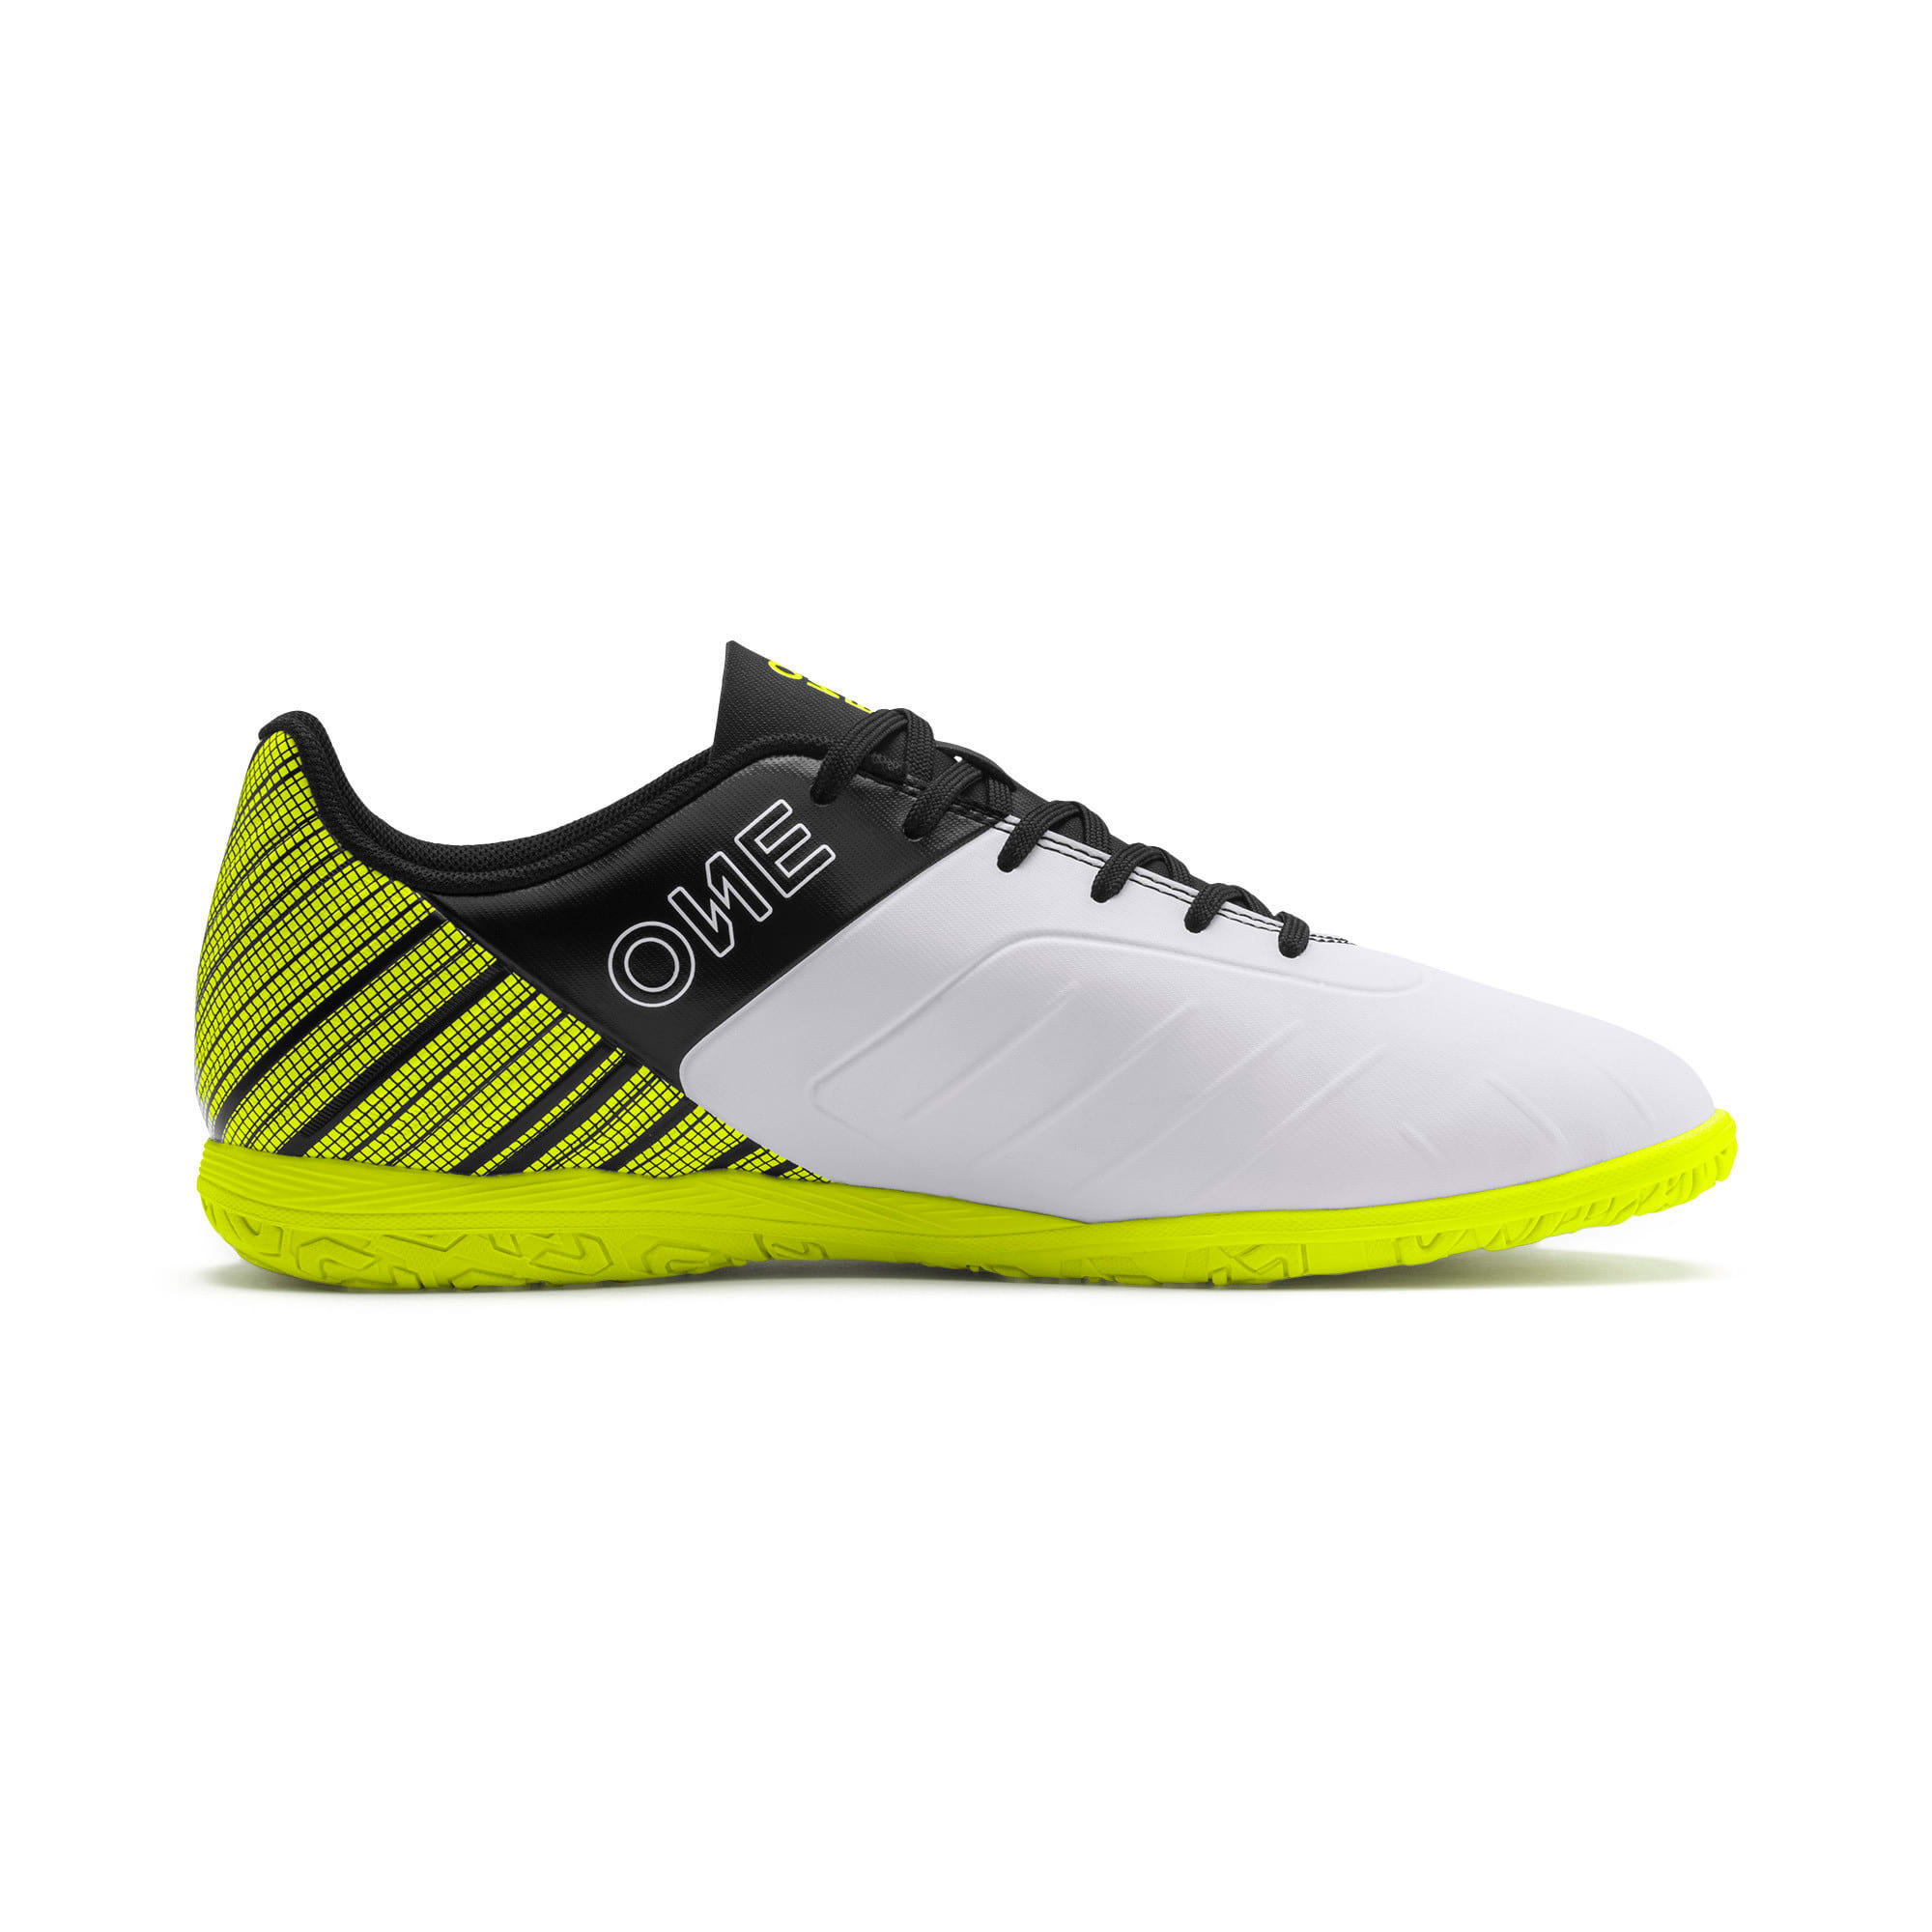 Thumbnail 6 of PUMA ONE 5.4 IT Men's Football Boots, White-Black-Yellow Alert, medium